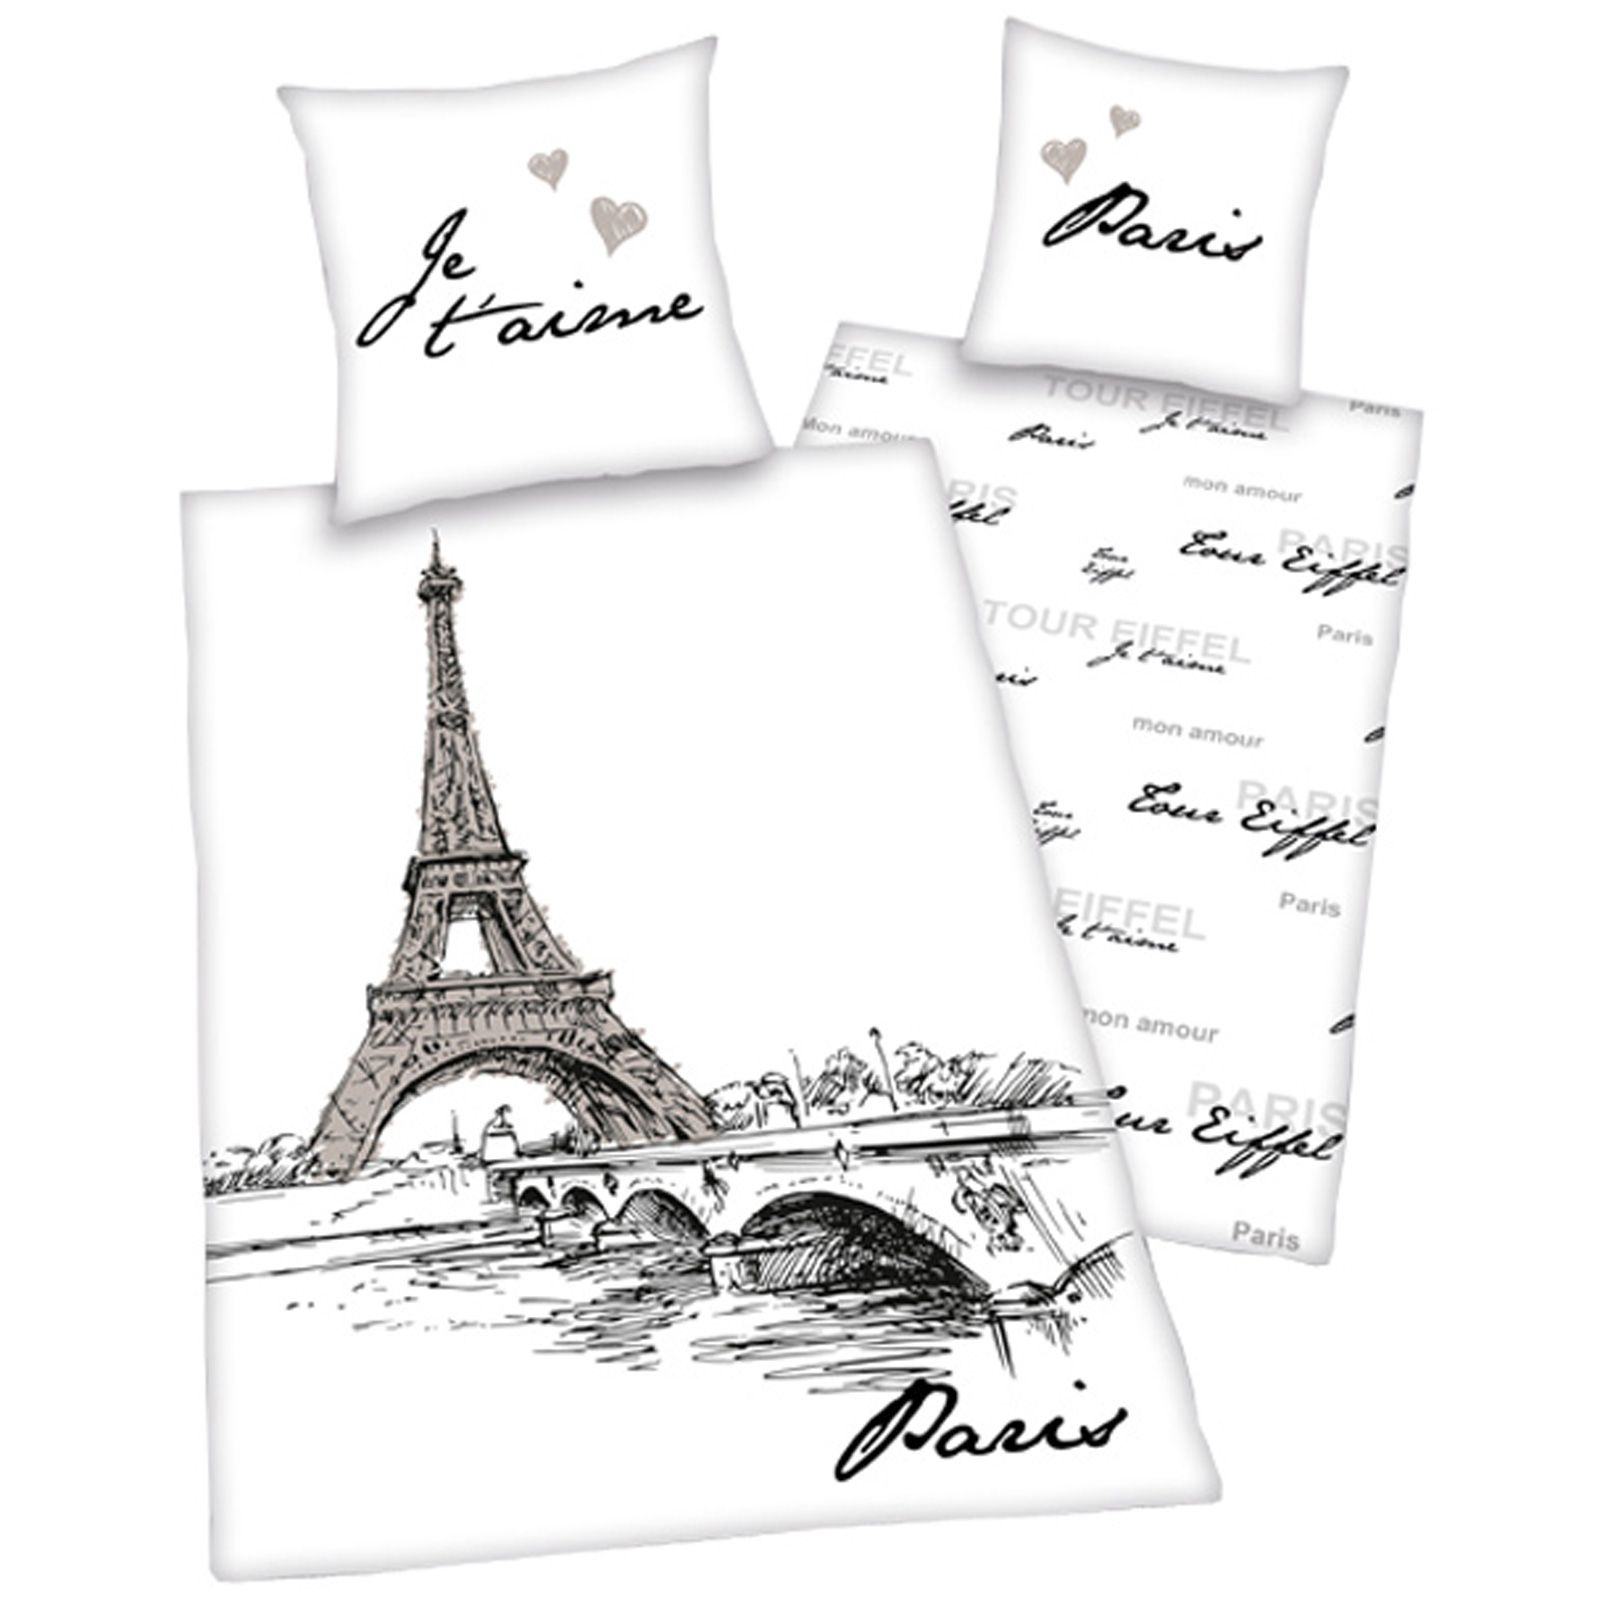 PARIS BEDDING SINGLE DUVET COVER SETS CITY LANDMARKS EIFFEL TOWER BEDROOM